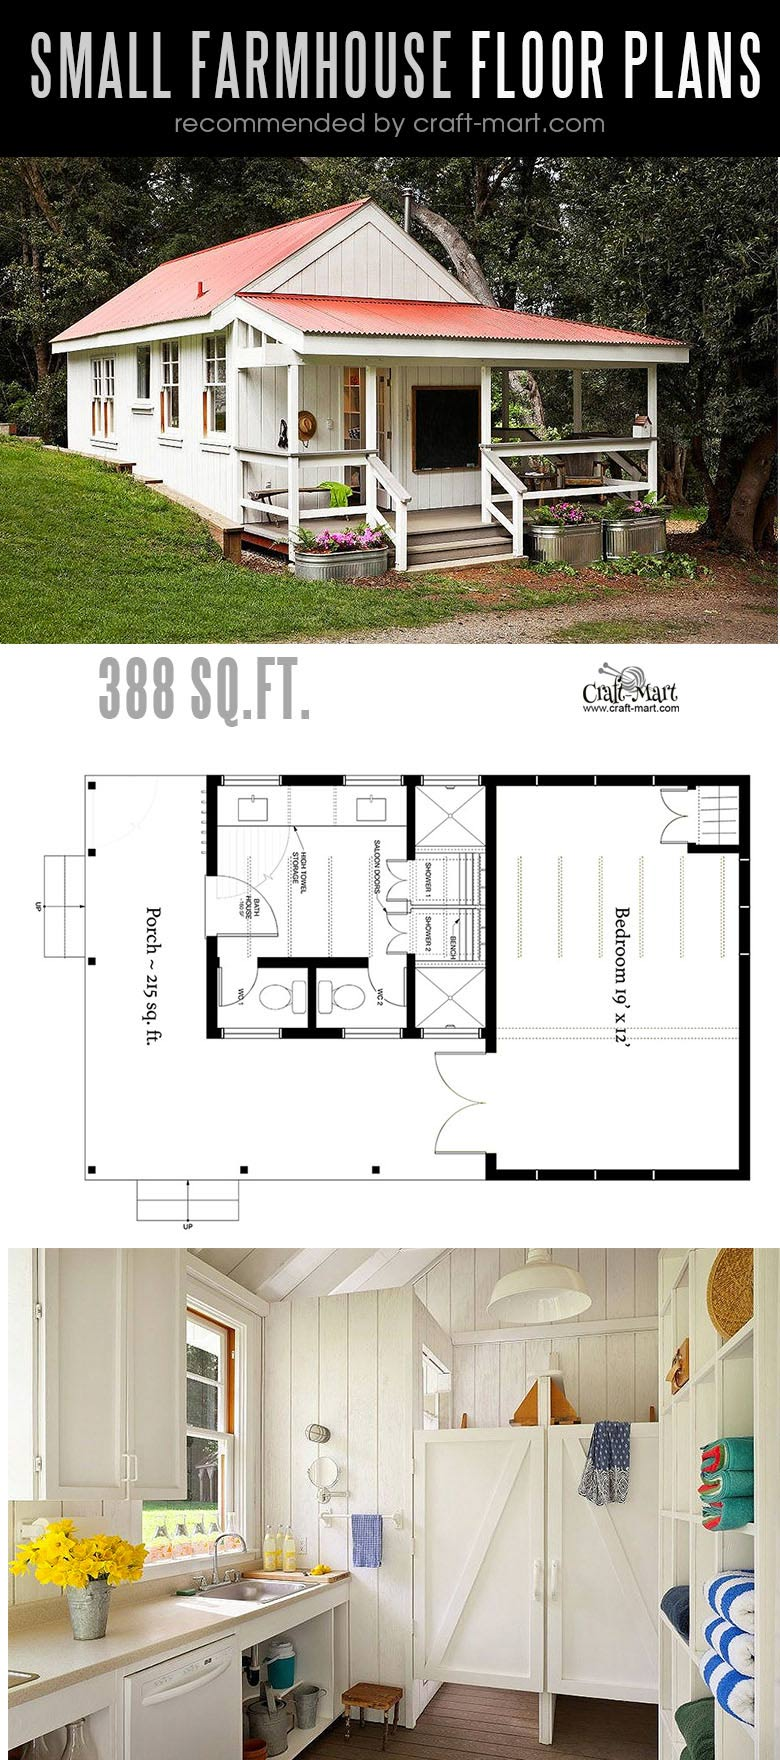 Designing and building a Farmhouse Style Summer Kitchen can be a lot of fun! Look at the best small farmhouse plans that can fit almost any tight budget. Learn how you can design the best modern farmhouse and decorate it as a pro! #tinyhouse #farmhouse #rustic #diy